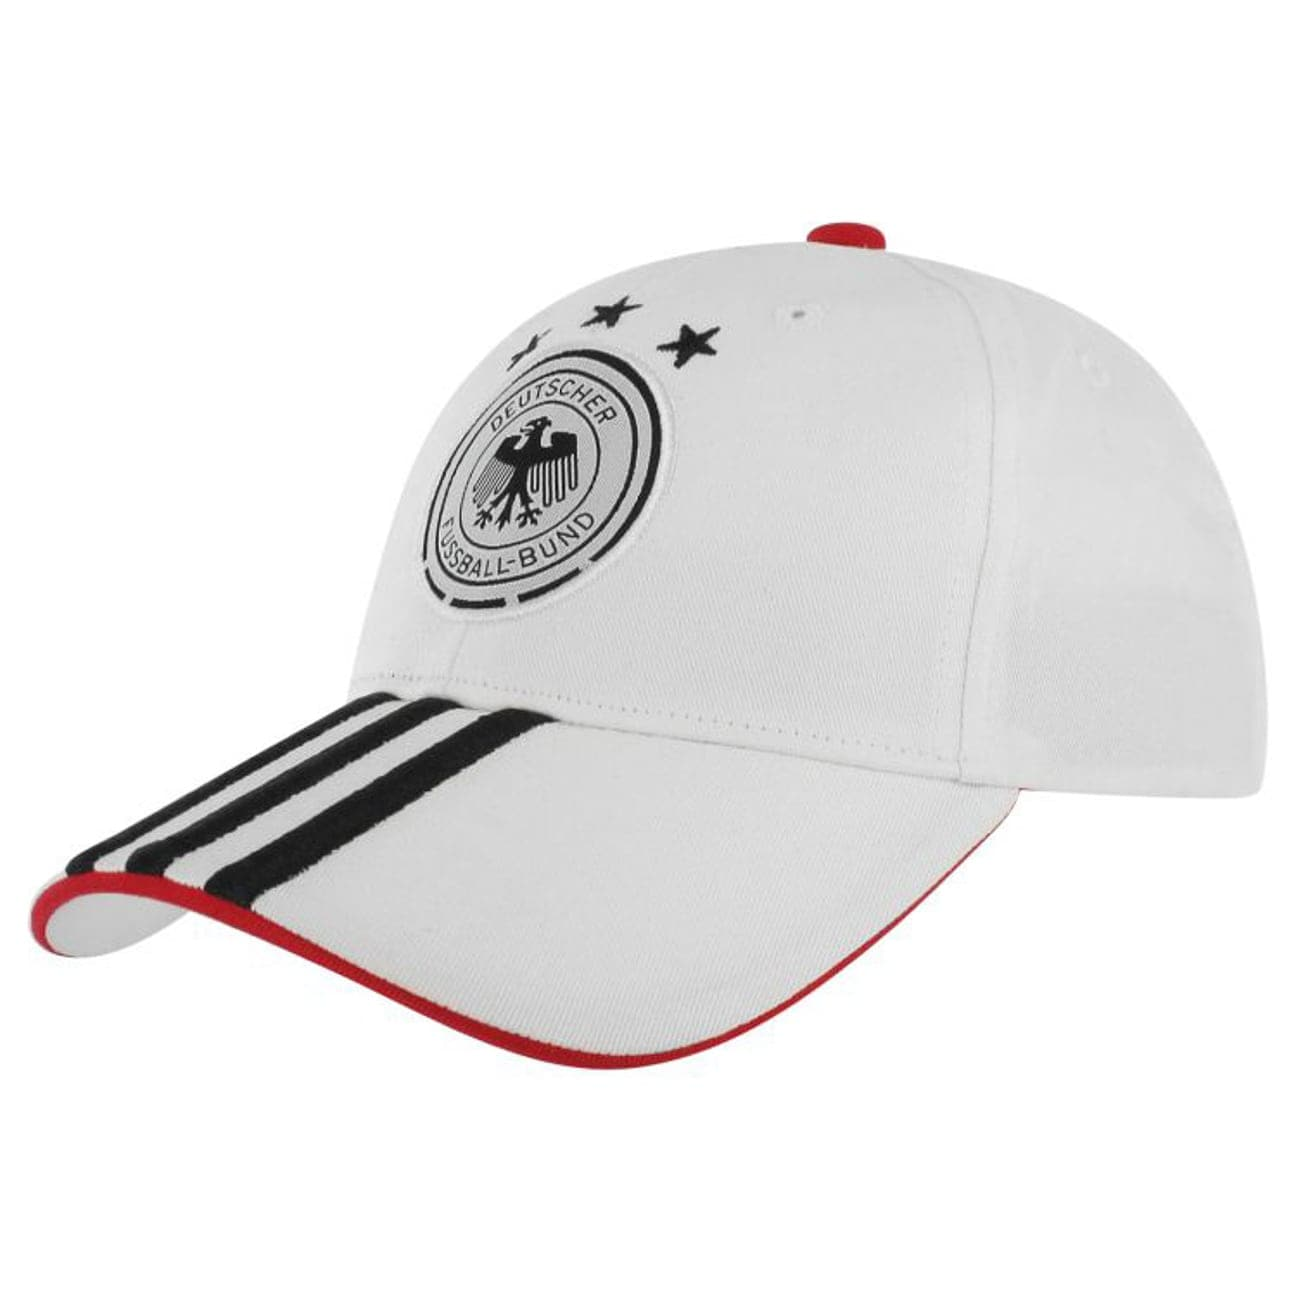 DFB 3S Cap by adidas